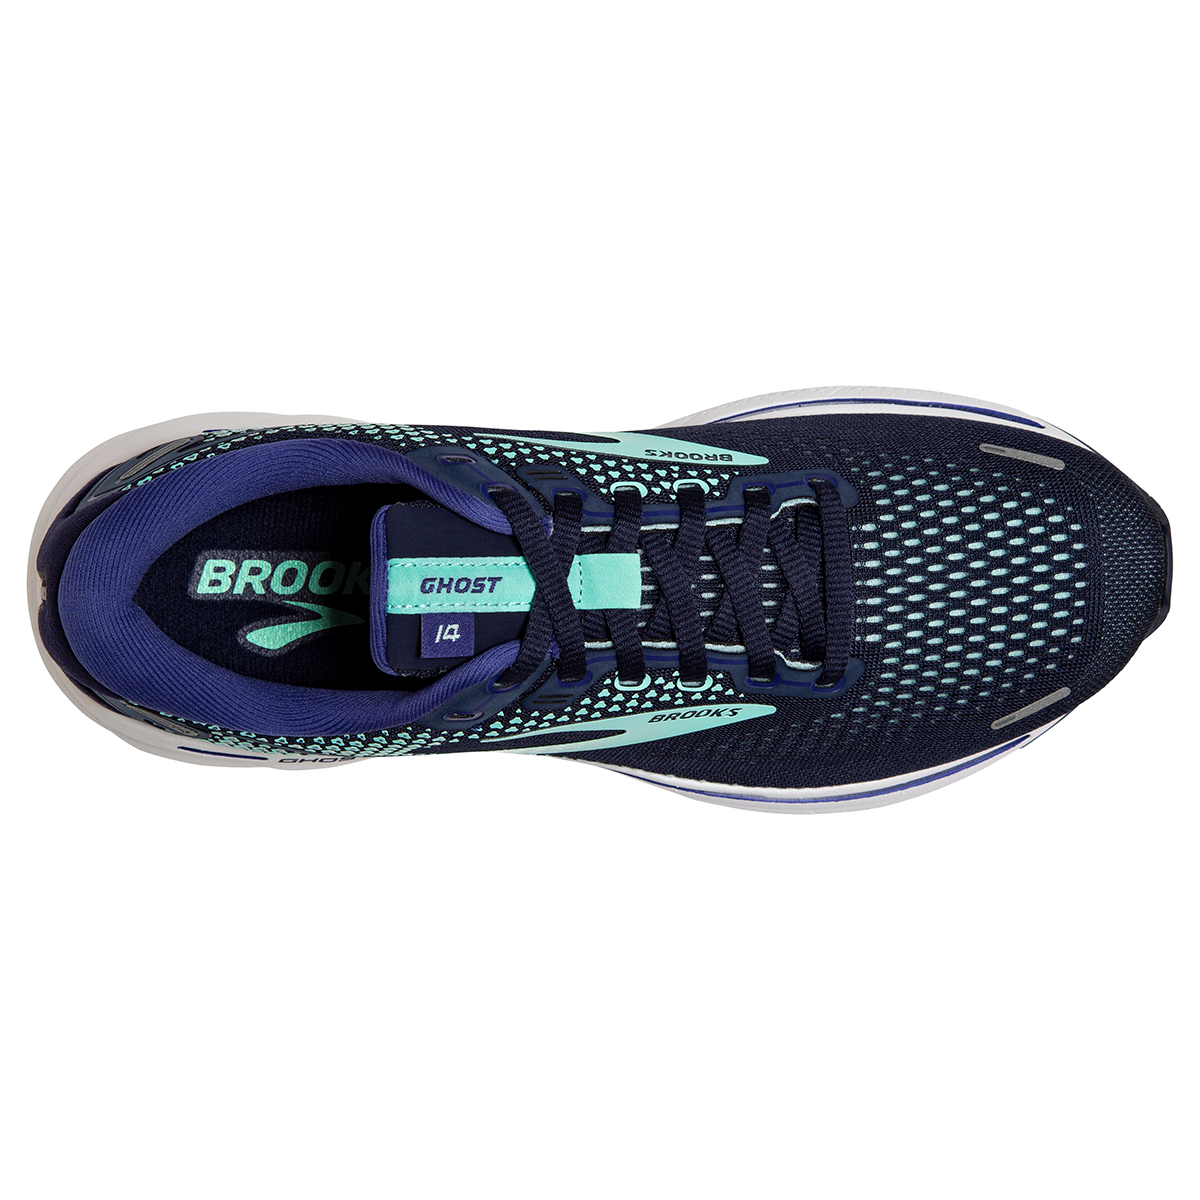 Women's Brooks Ghost 14 Running Shoe - Color: Peacoat/Yucca - Size: 5 - Width: Regular, Peacoat/Yucca, large, image 3